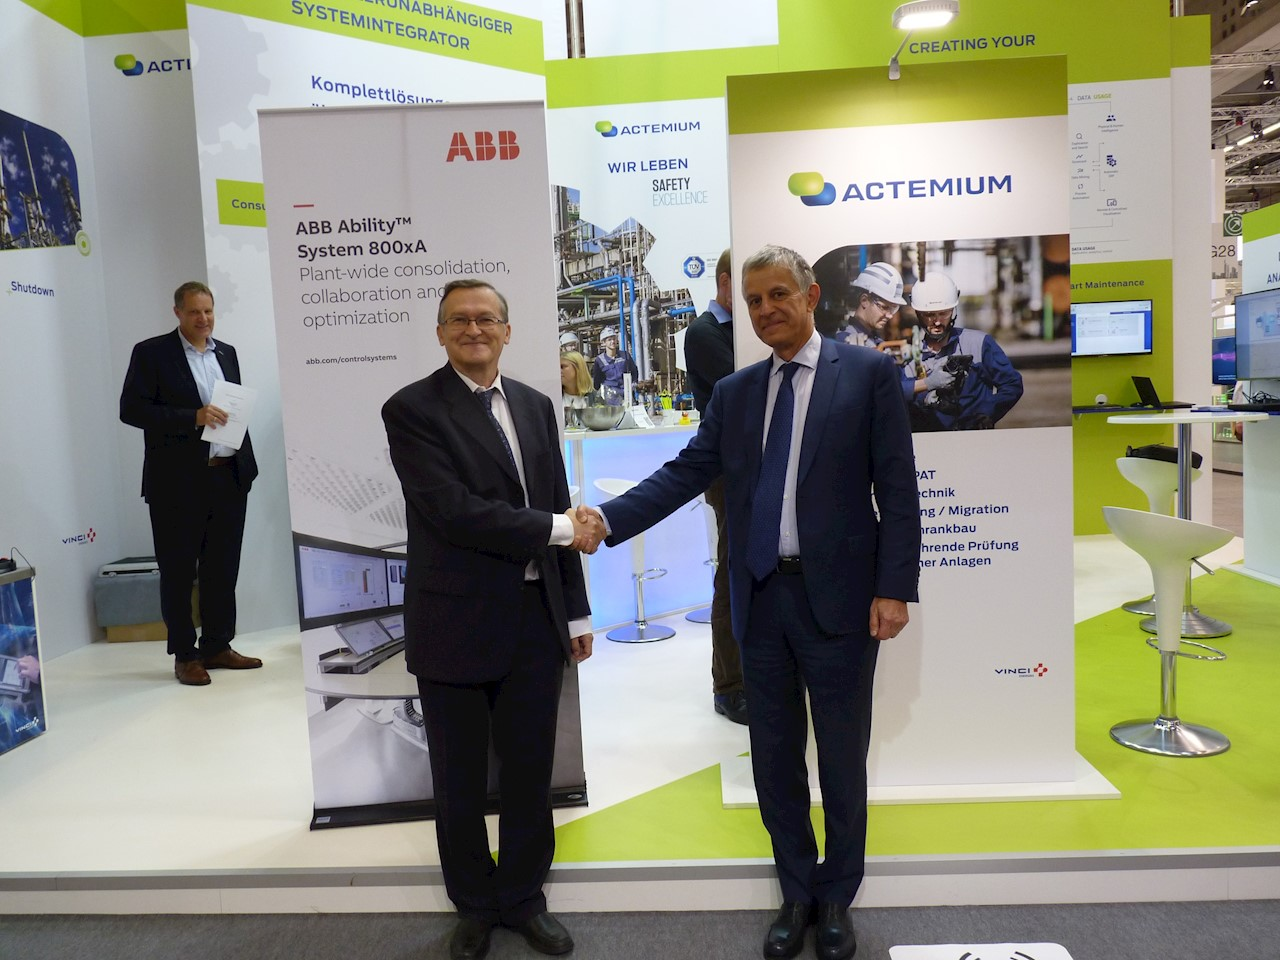 From left to right: Ilpo Ruohonen, Business Unit Managing Director ABB Control Technologies and Bernard Latour, Deputy Managing Director VINCI Energies/President Actemium Brand